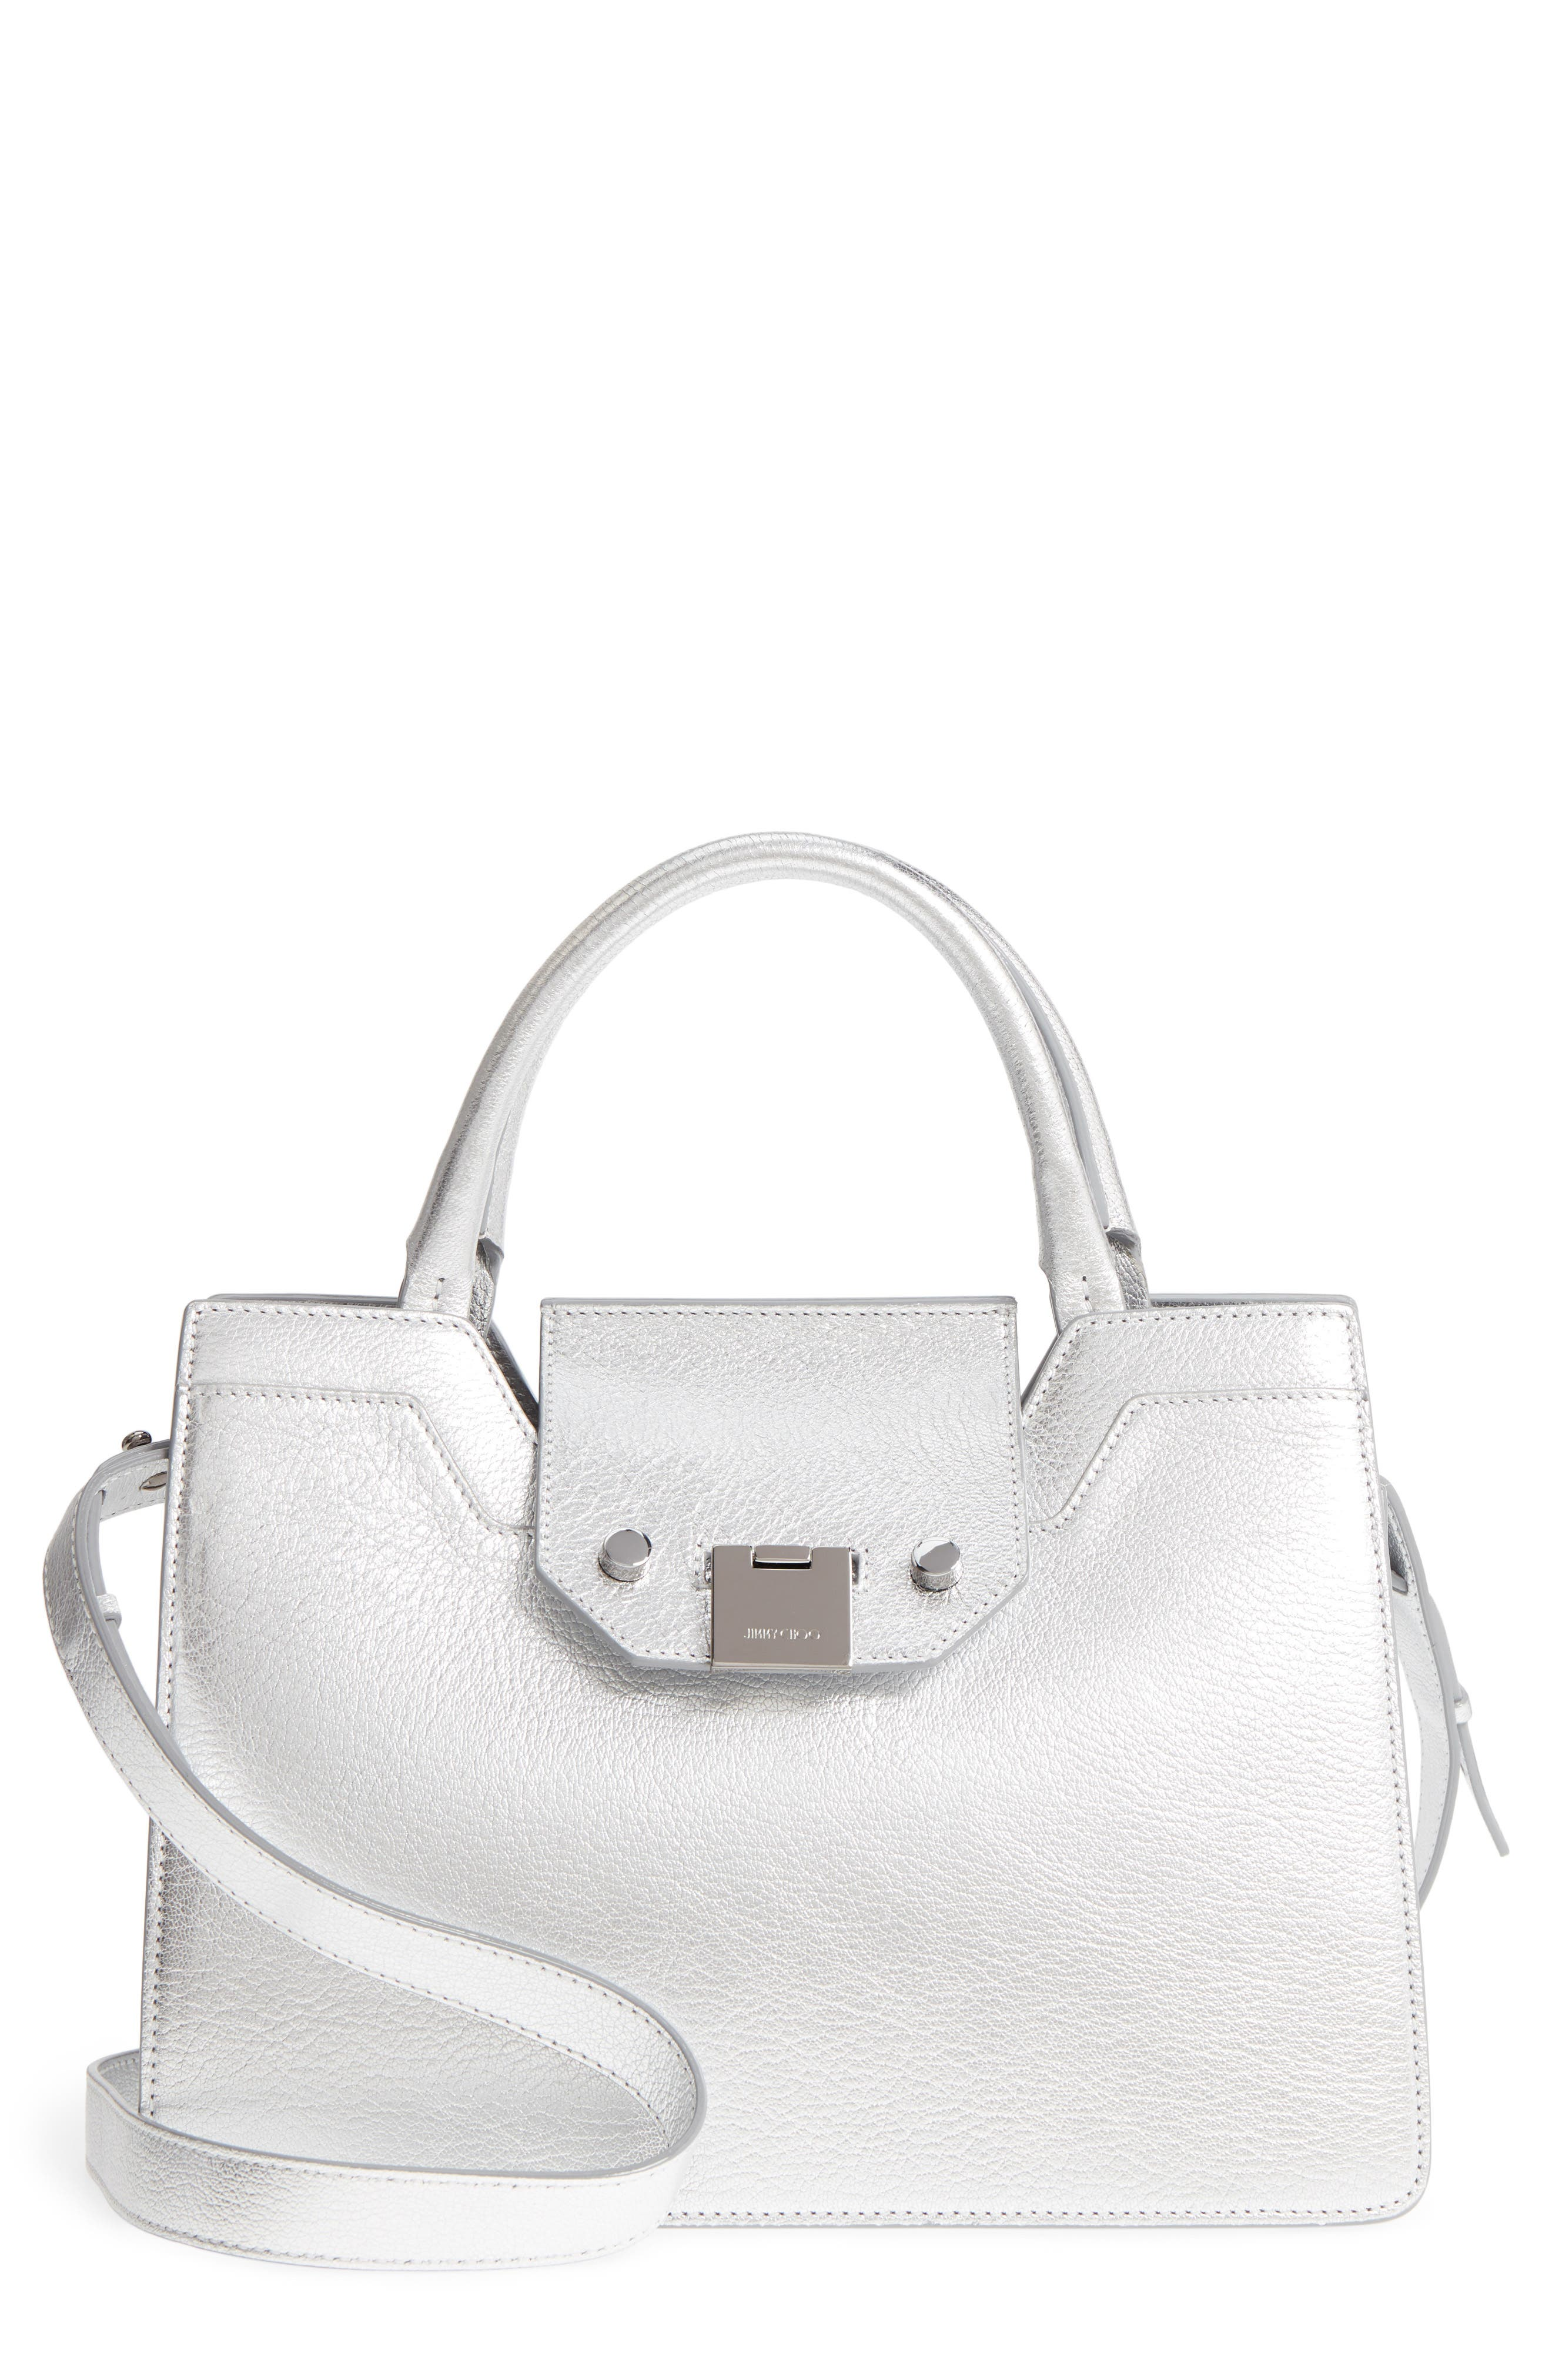 Jimmy Choo Small Rebel Metallic Leather Tote